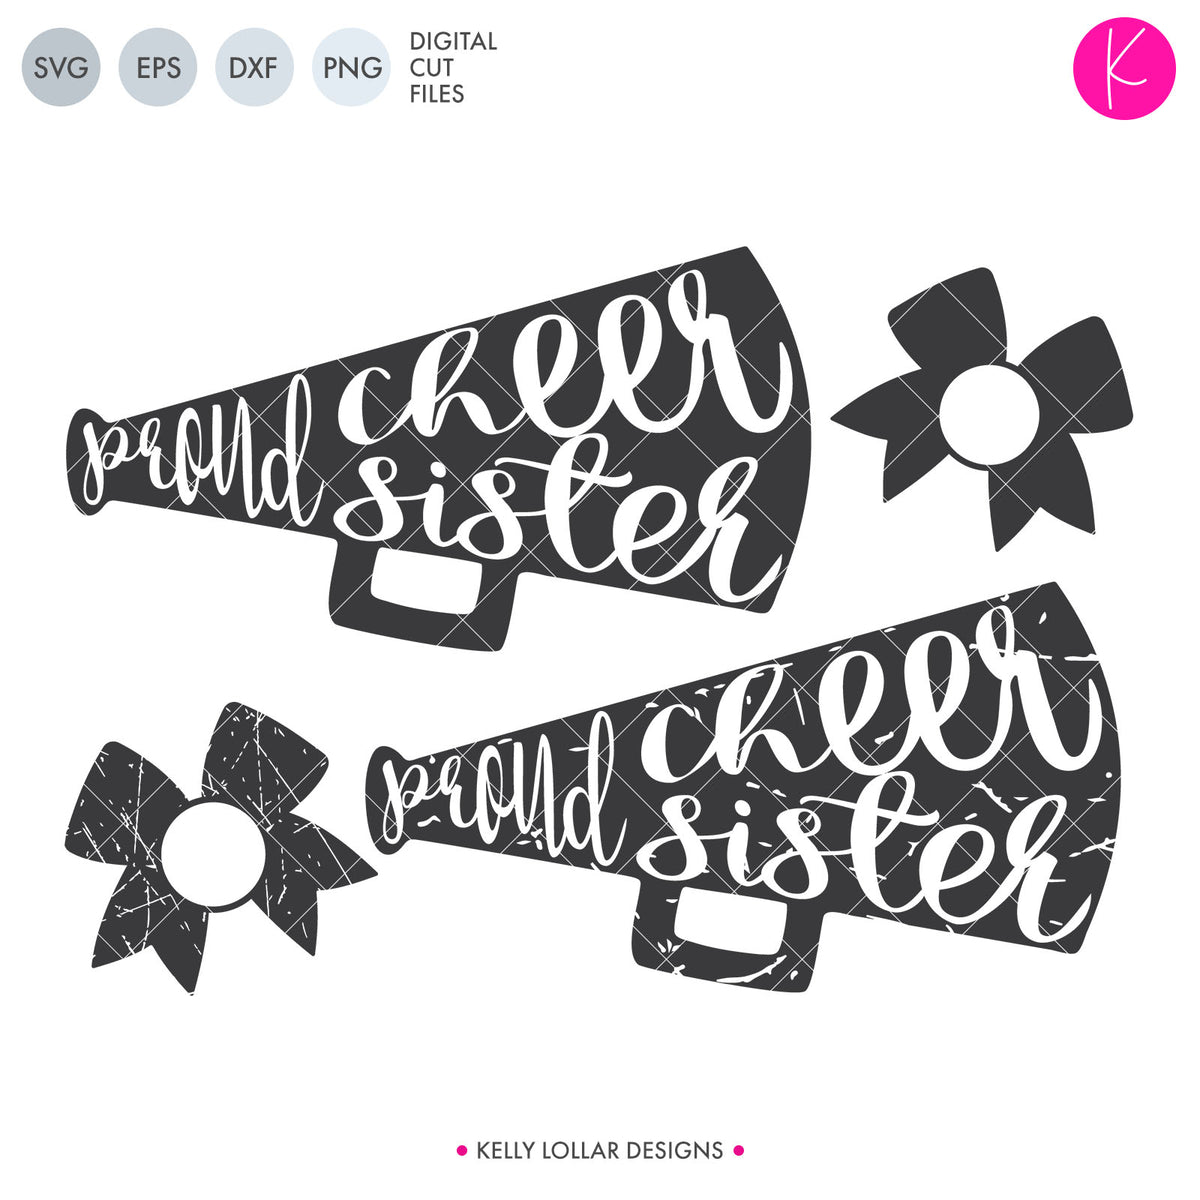 Proud Family Cheer Megaphone SVG Cut Files